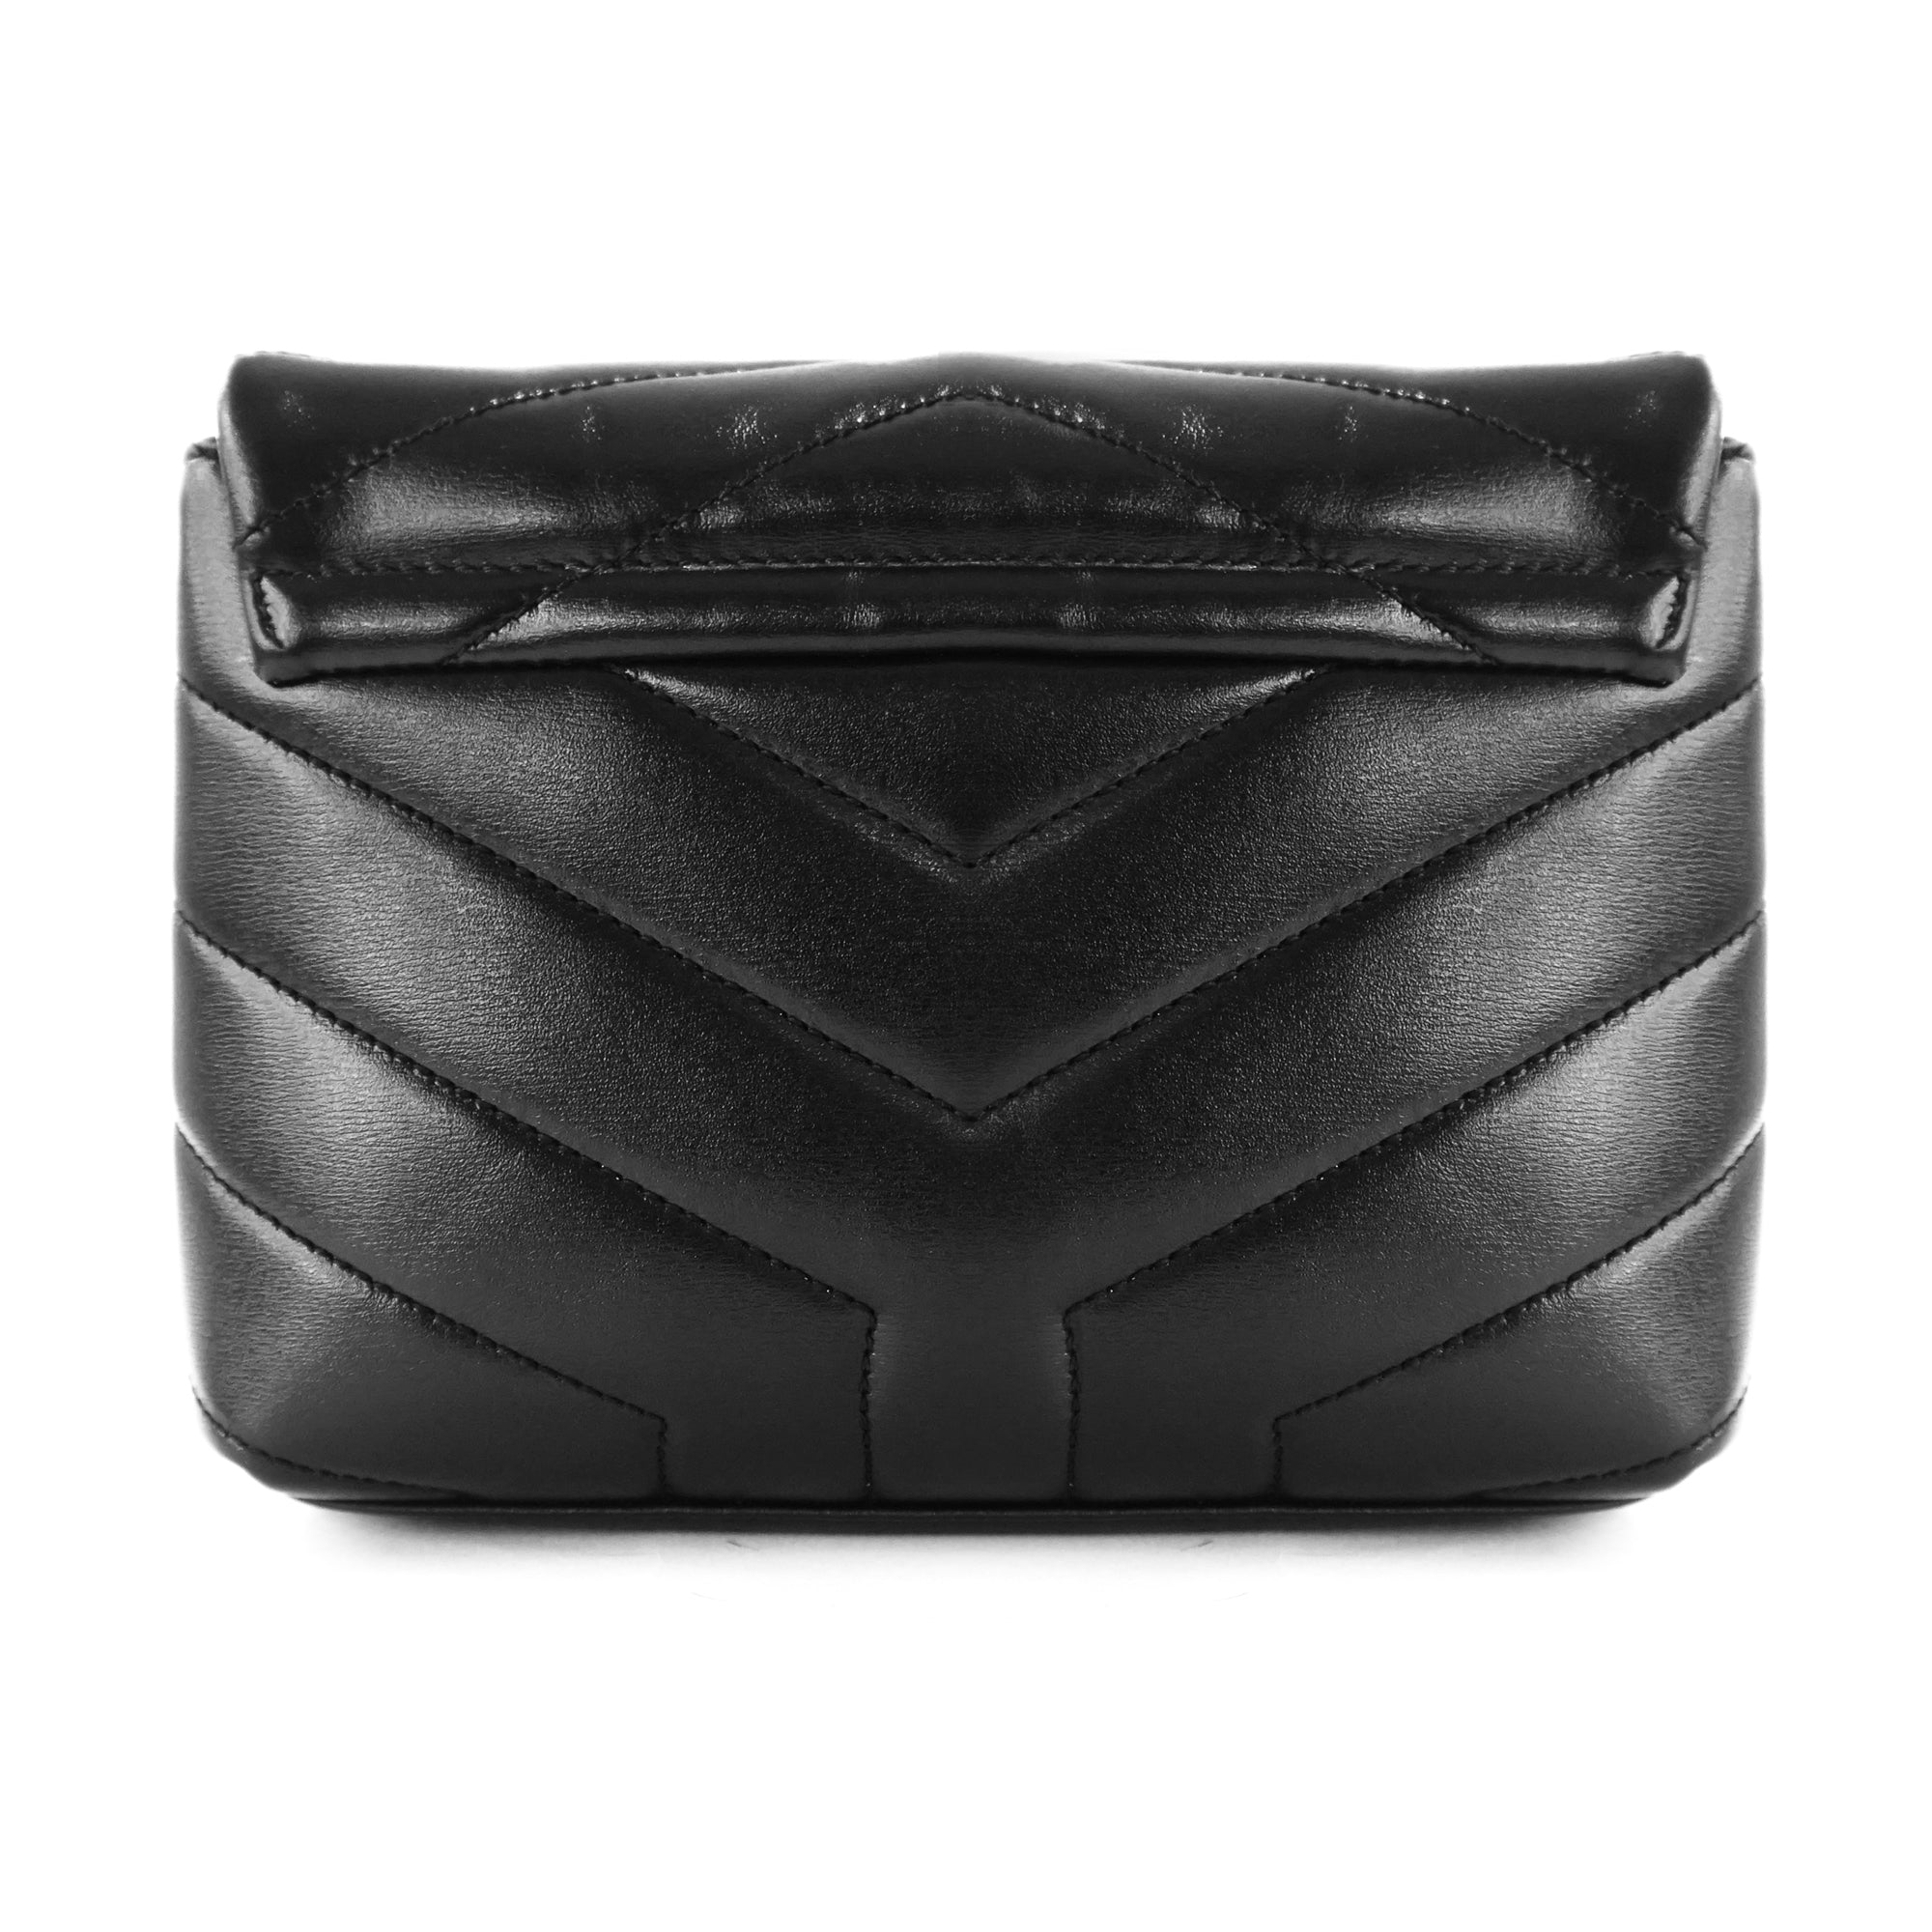 "Saint Laurent Loulou Toy Bag in Quilted ""Y"" Leather in Black"